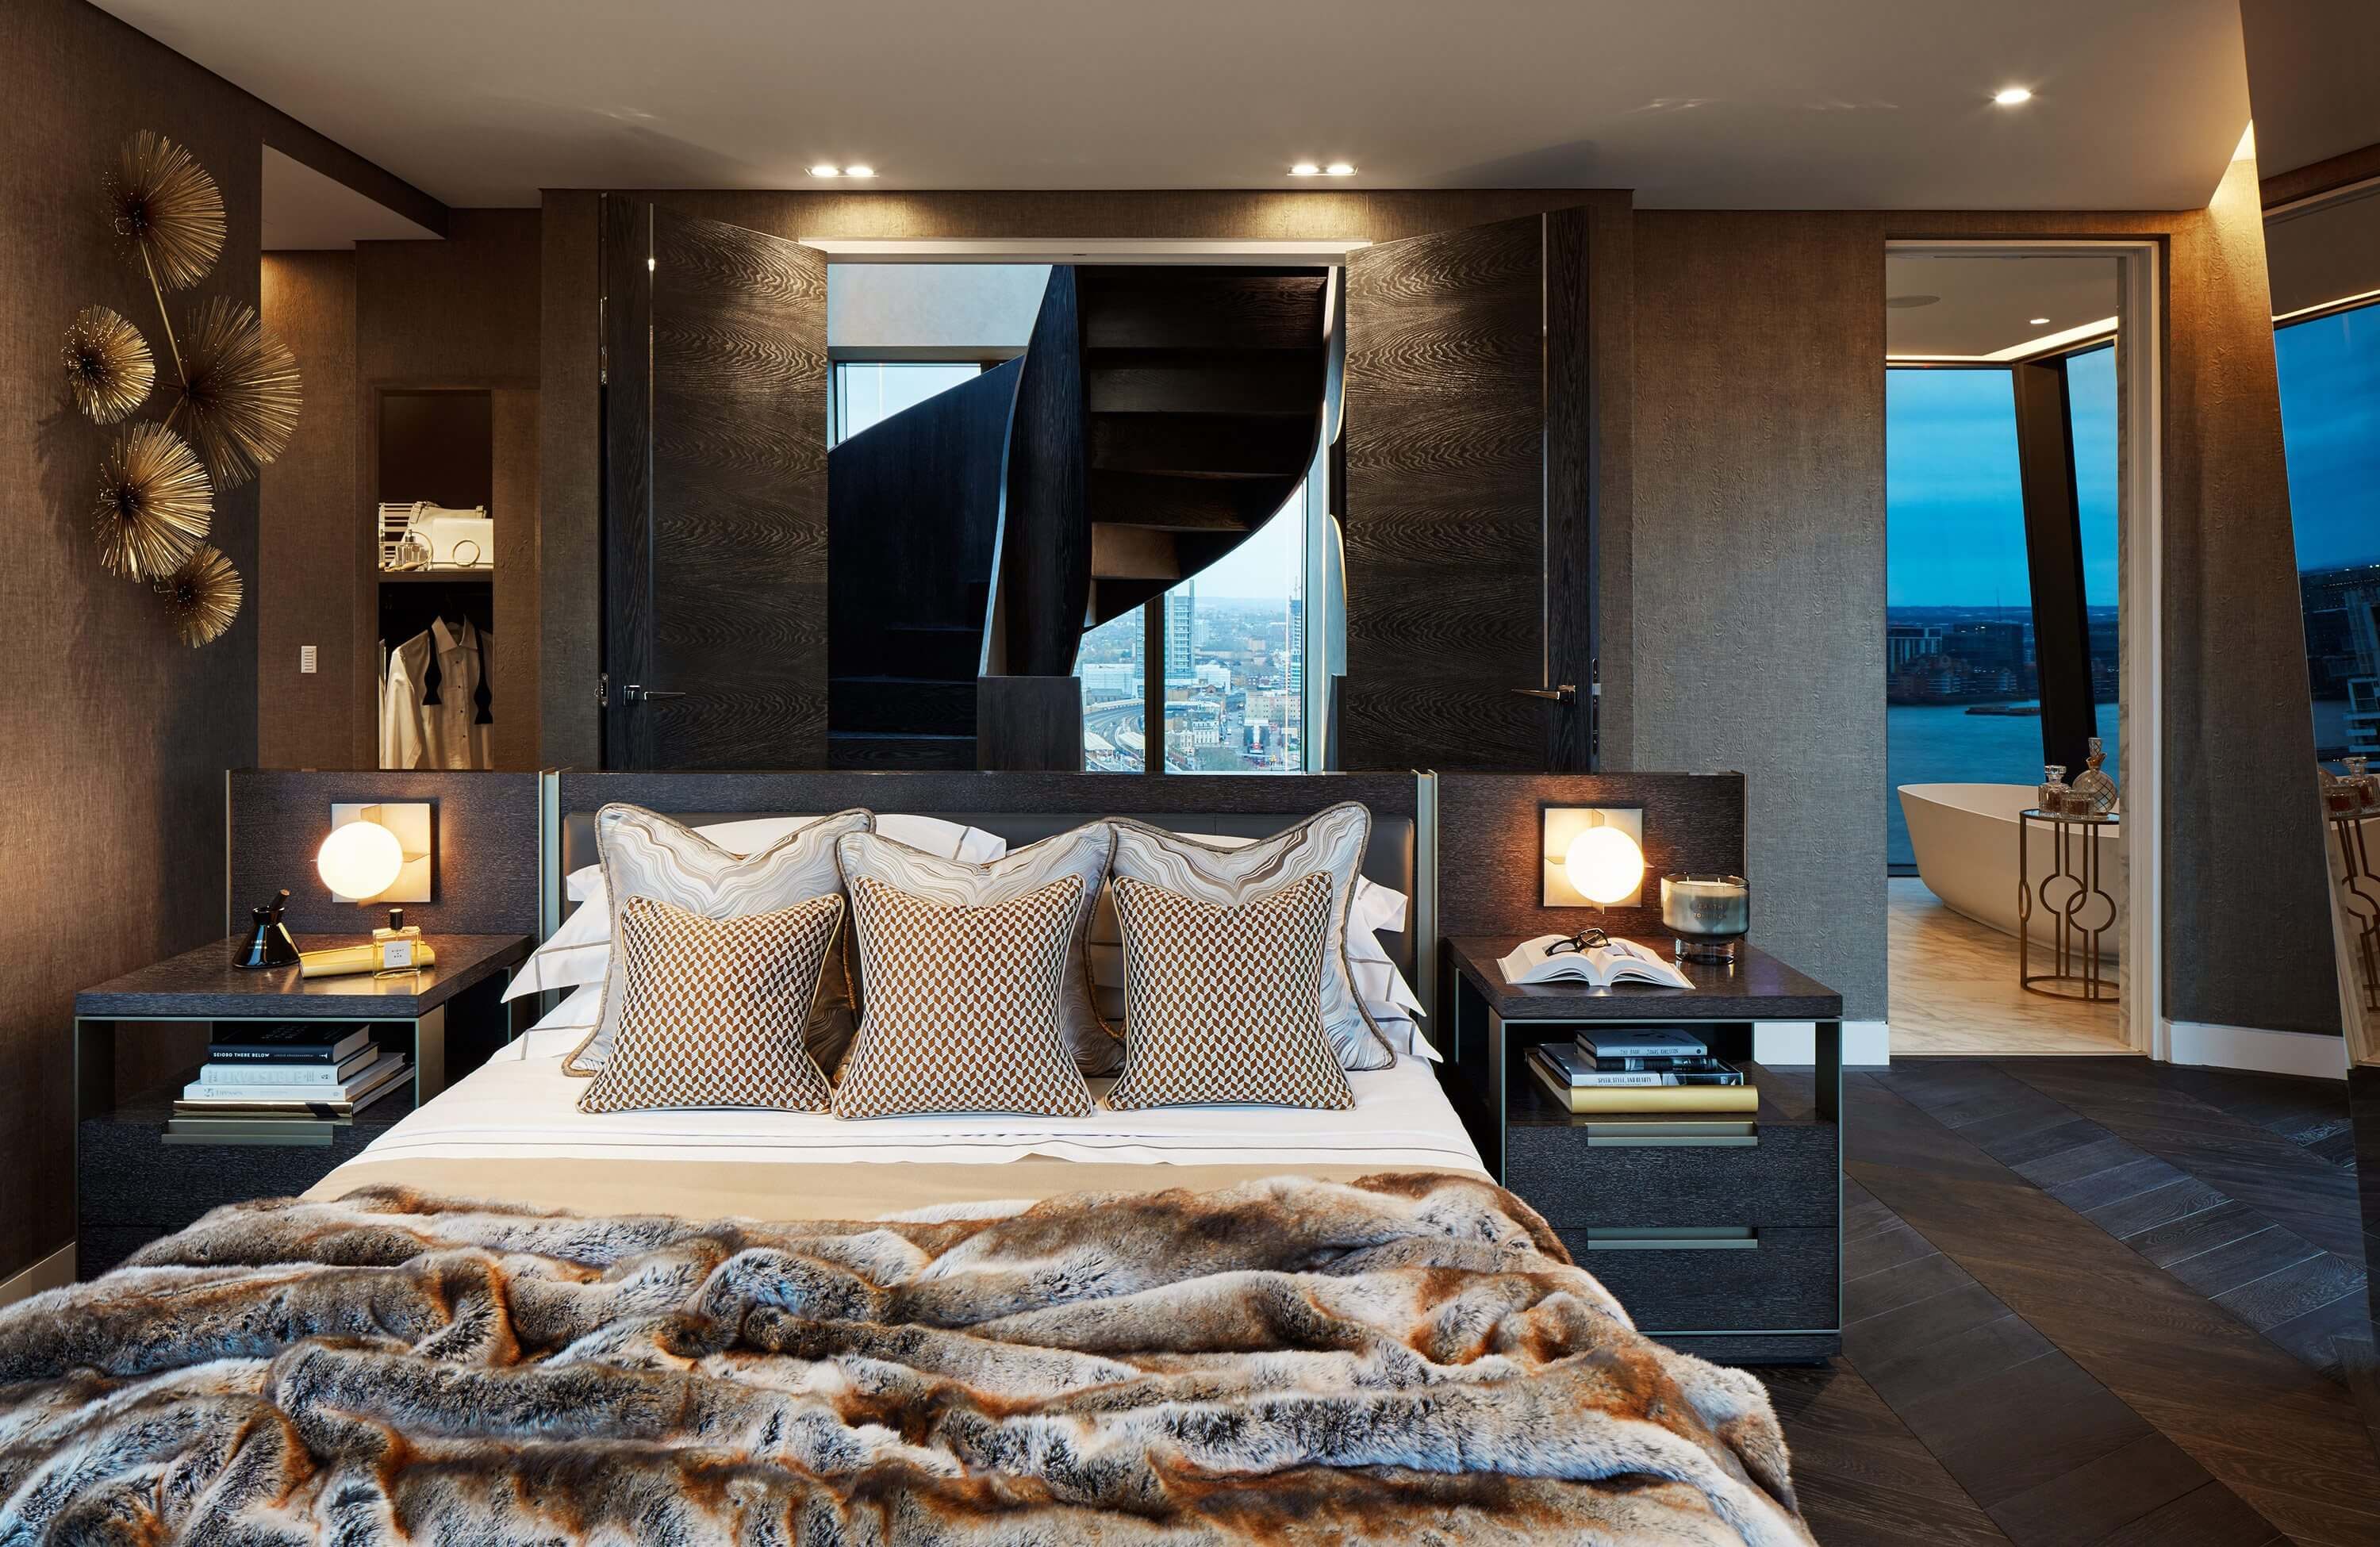 Honky Interior Design Parliament House London Master Bedroom